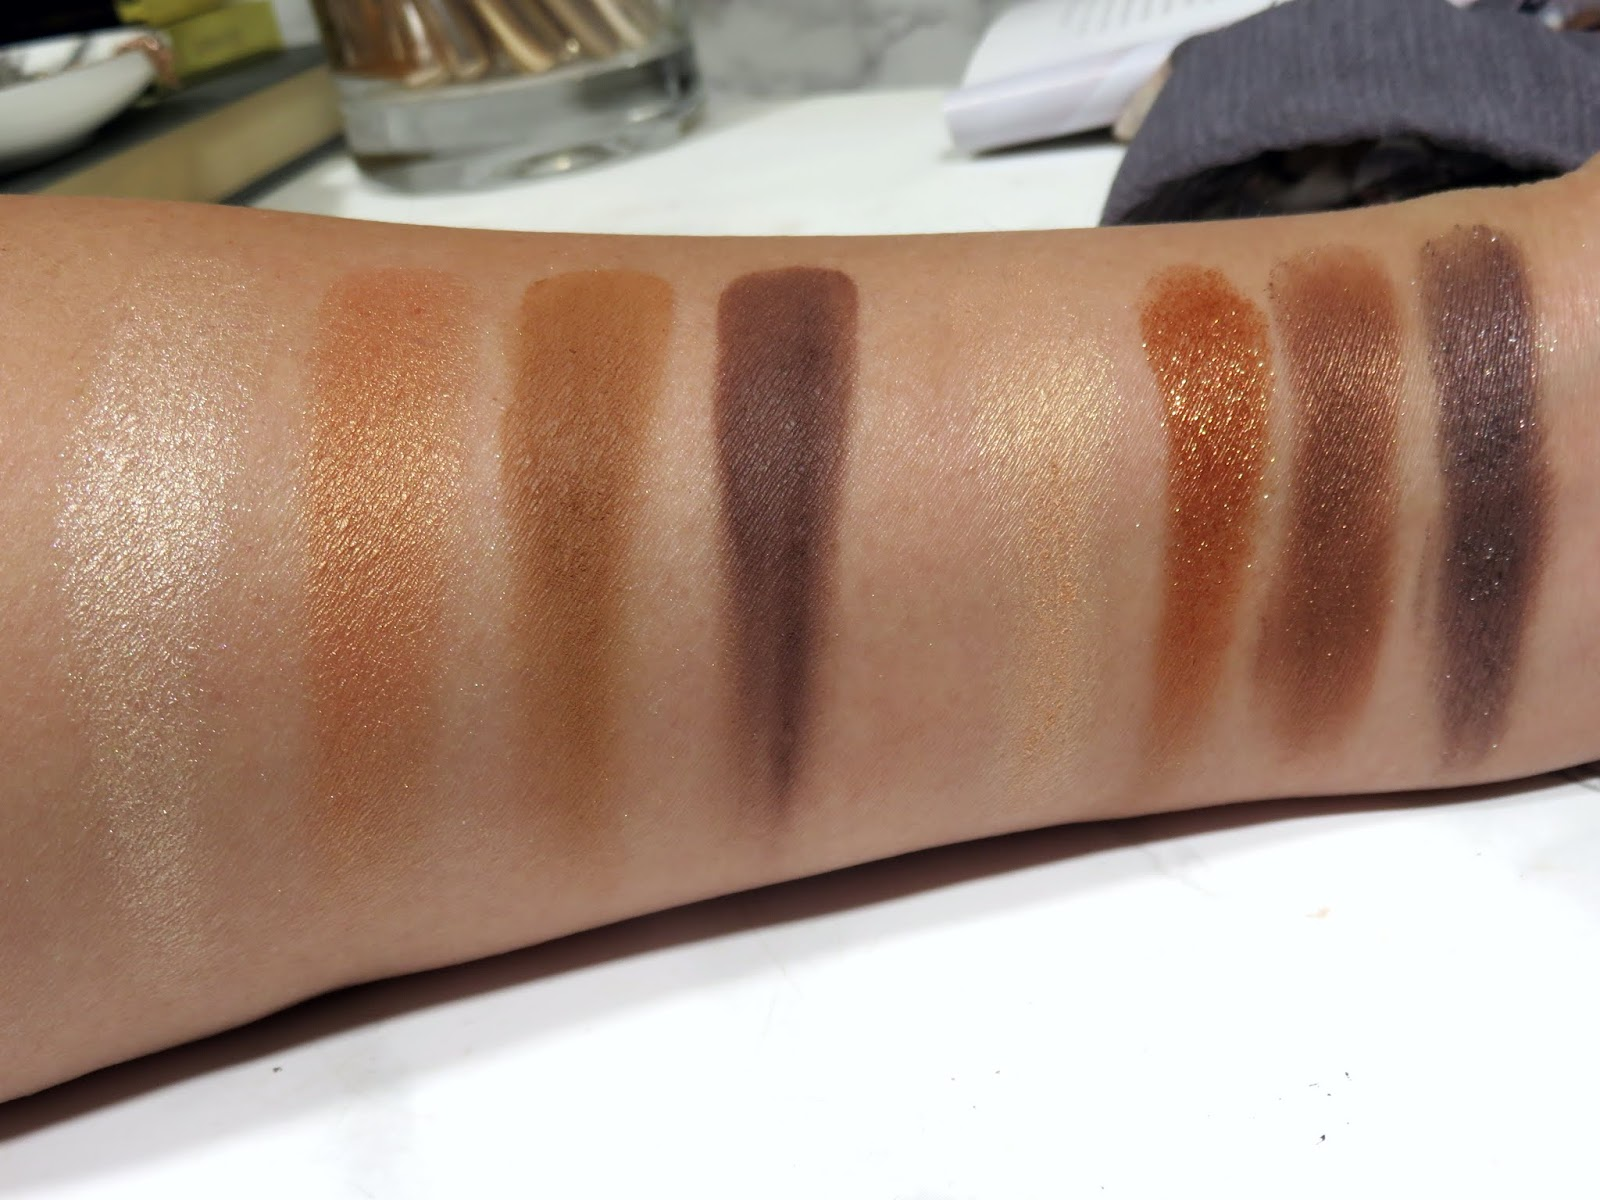 De La Creme vs. Cognac Sable Swatches